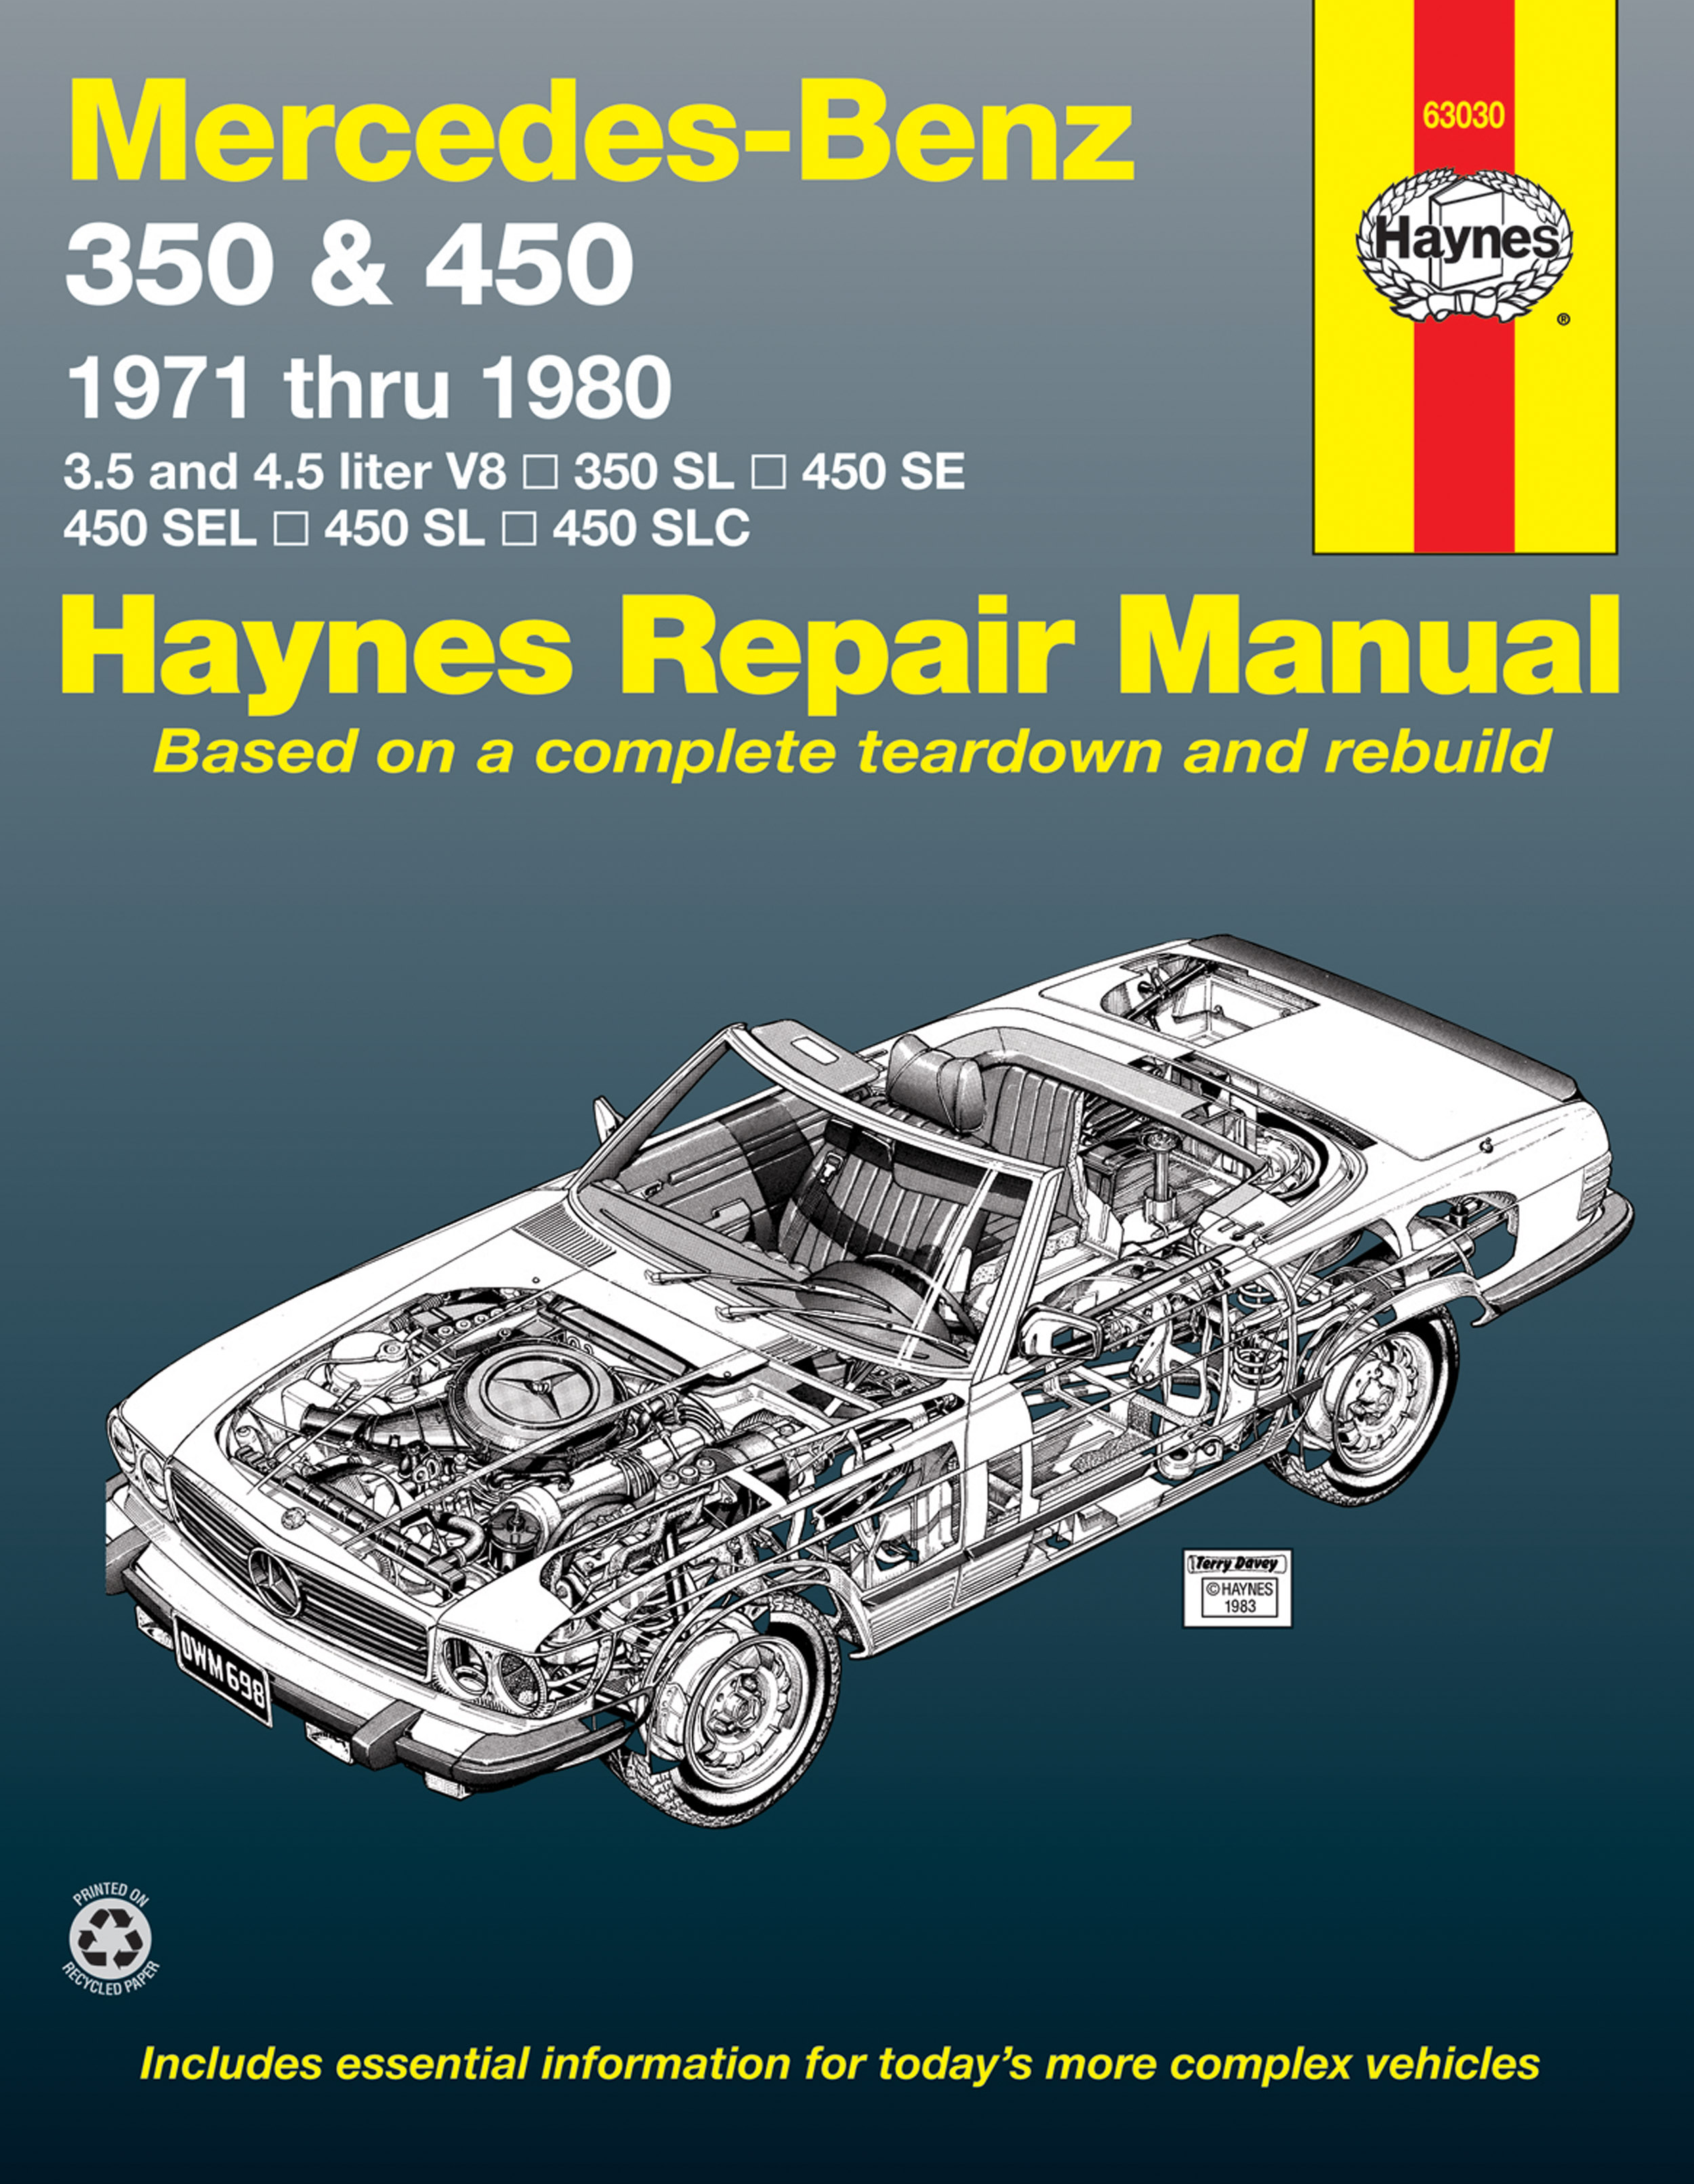 Mercedes-Benz 450SLC (1971 - 1980) Repair Manuals